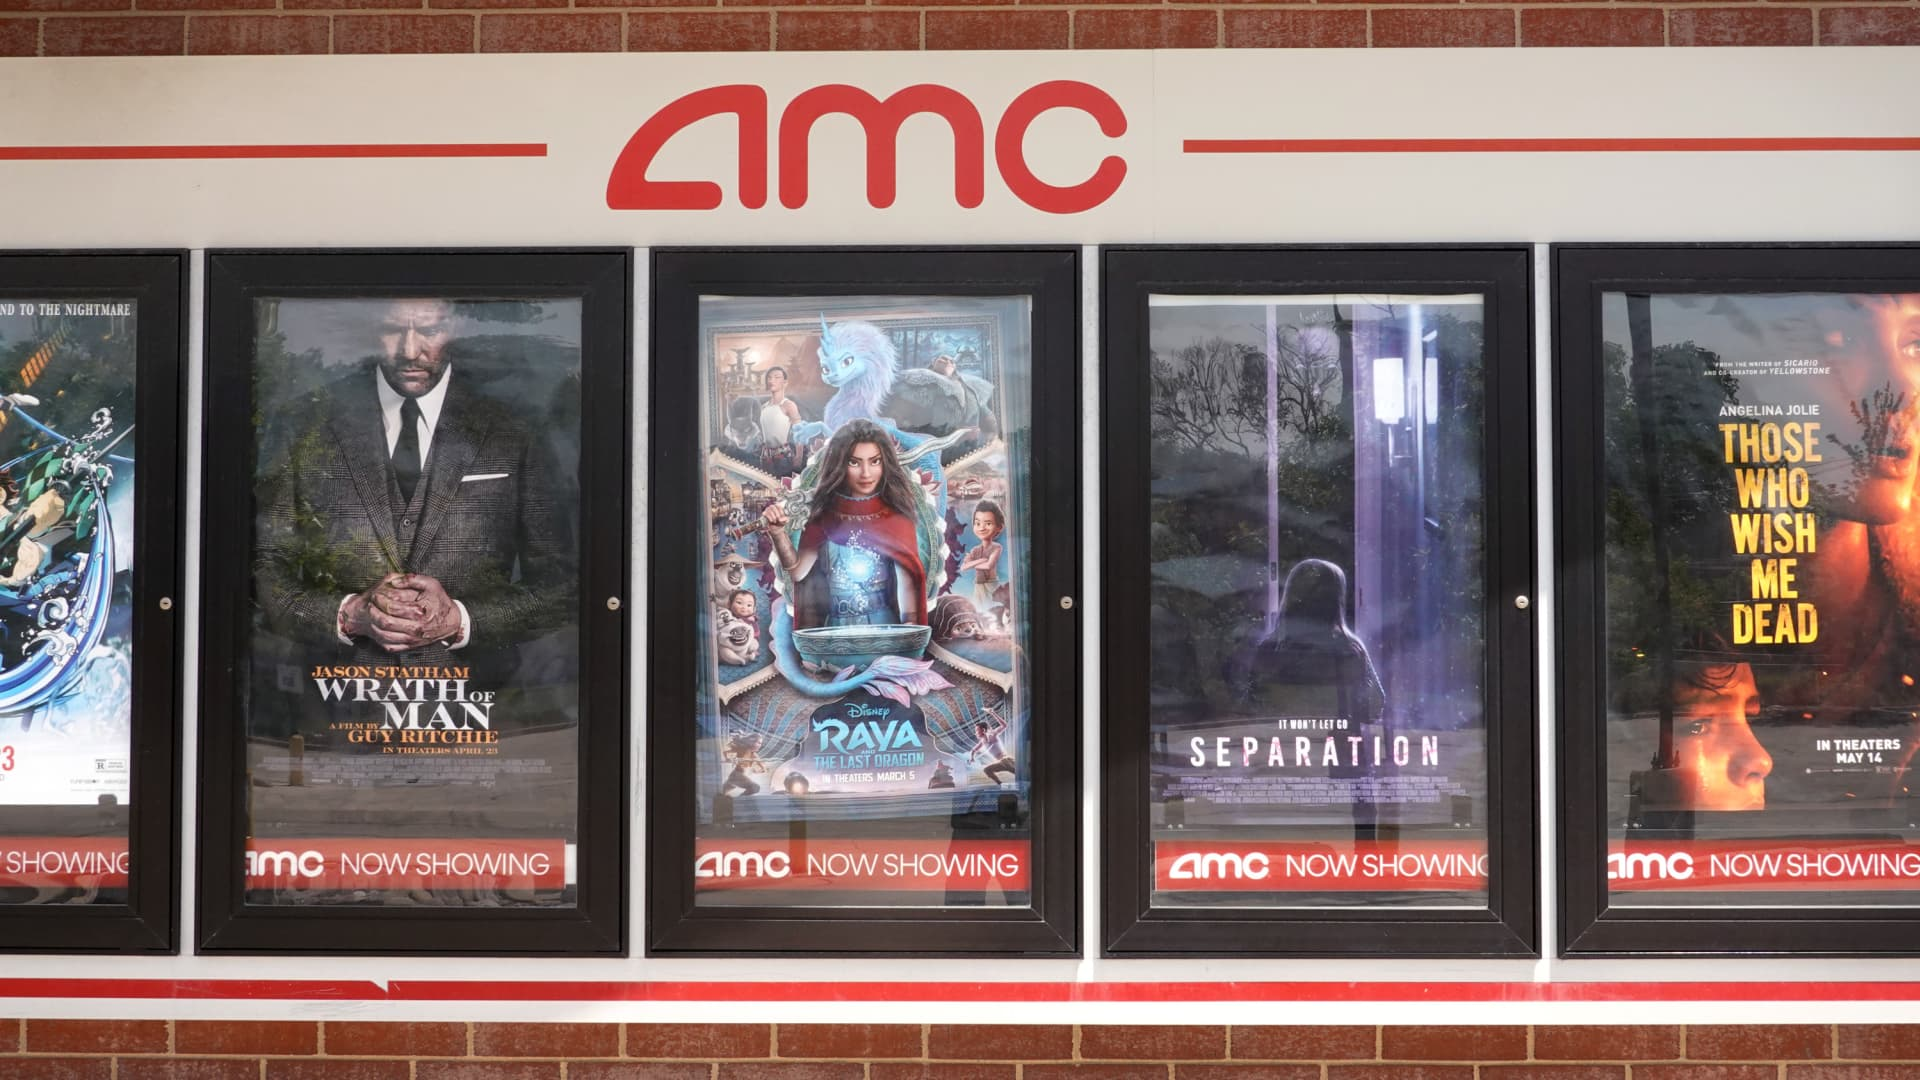 Movie poster of current offerings are displayed on the front of an AMC theater on June 01, 2021 in Chicago, Illinois. Mudrick Capital has agreed to purchase 8.5 million share of the theater chain for $230.5 million.